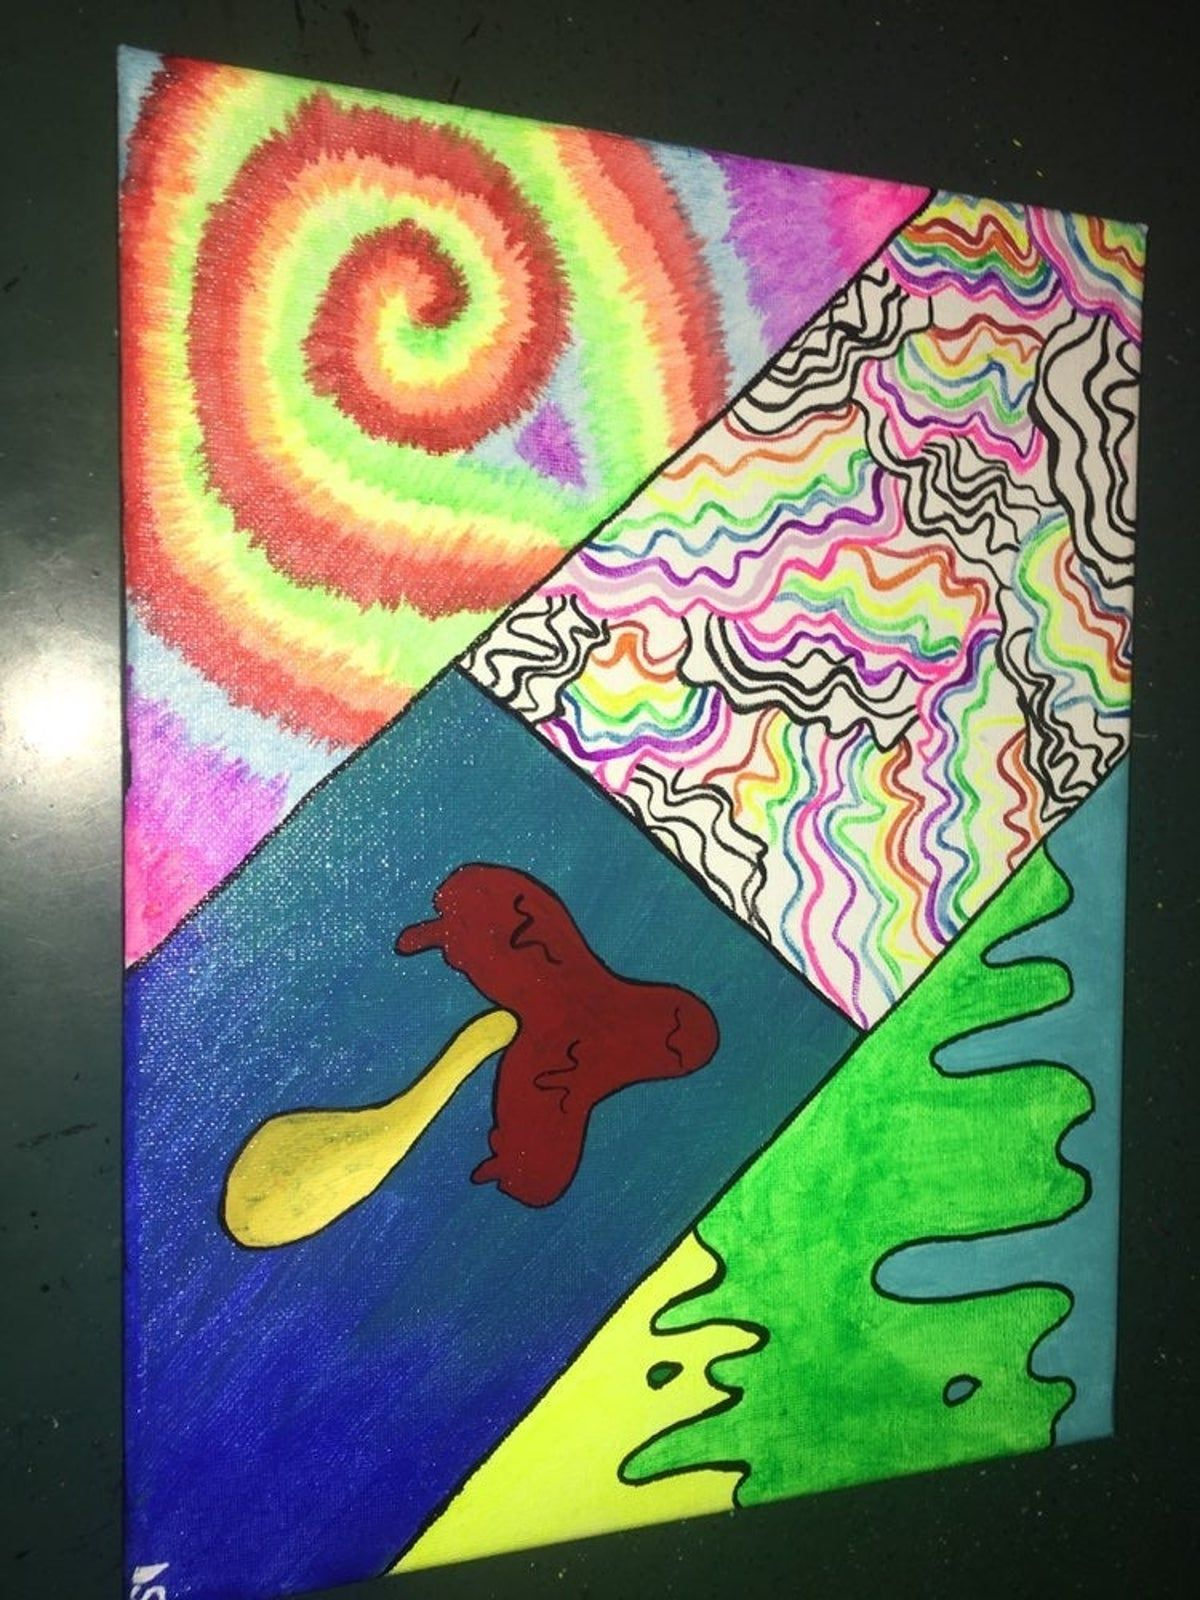 Trippy Painting Trippy Painting Art Drawings Simple Doodle Art Designs Are you searching for led light png images or vector? trippy painting art drawings simple